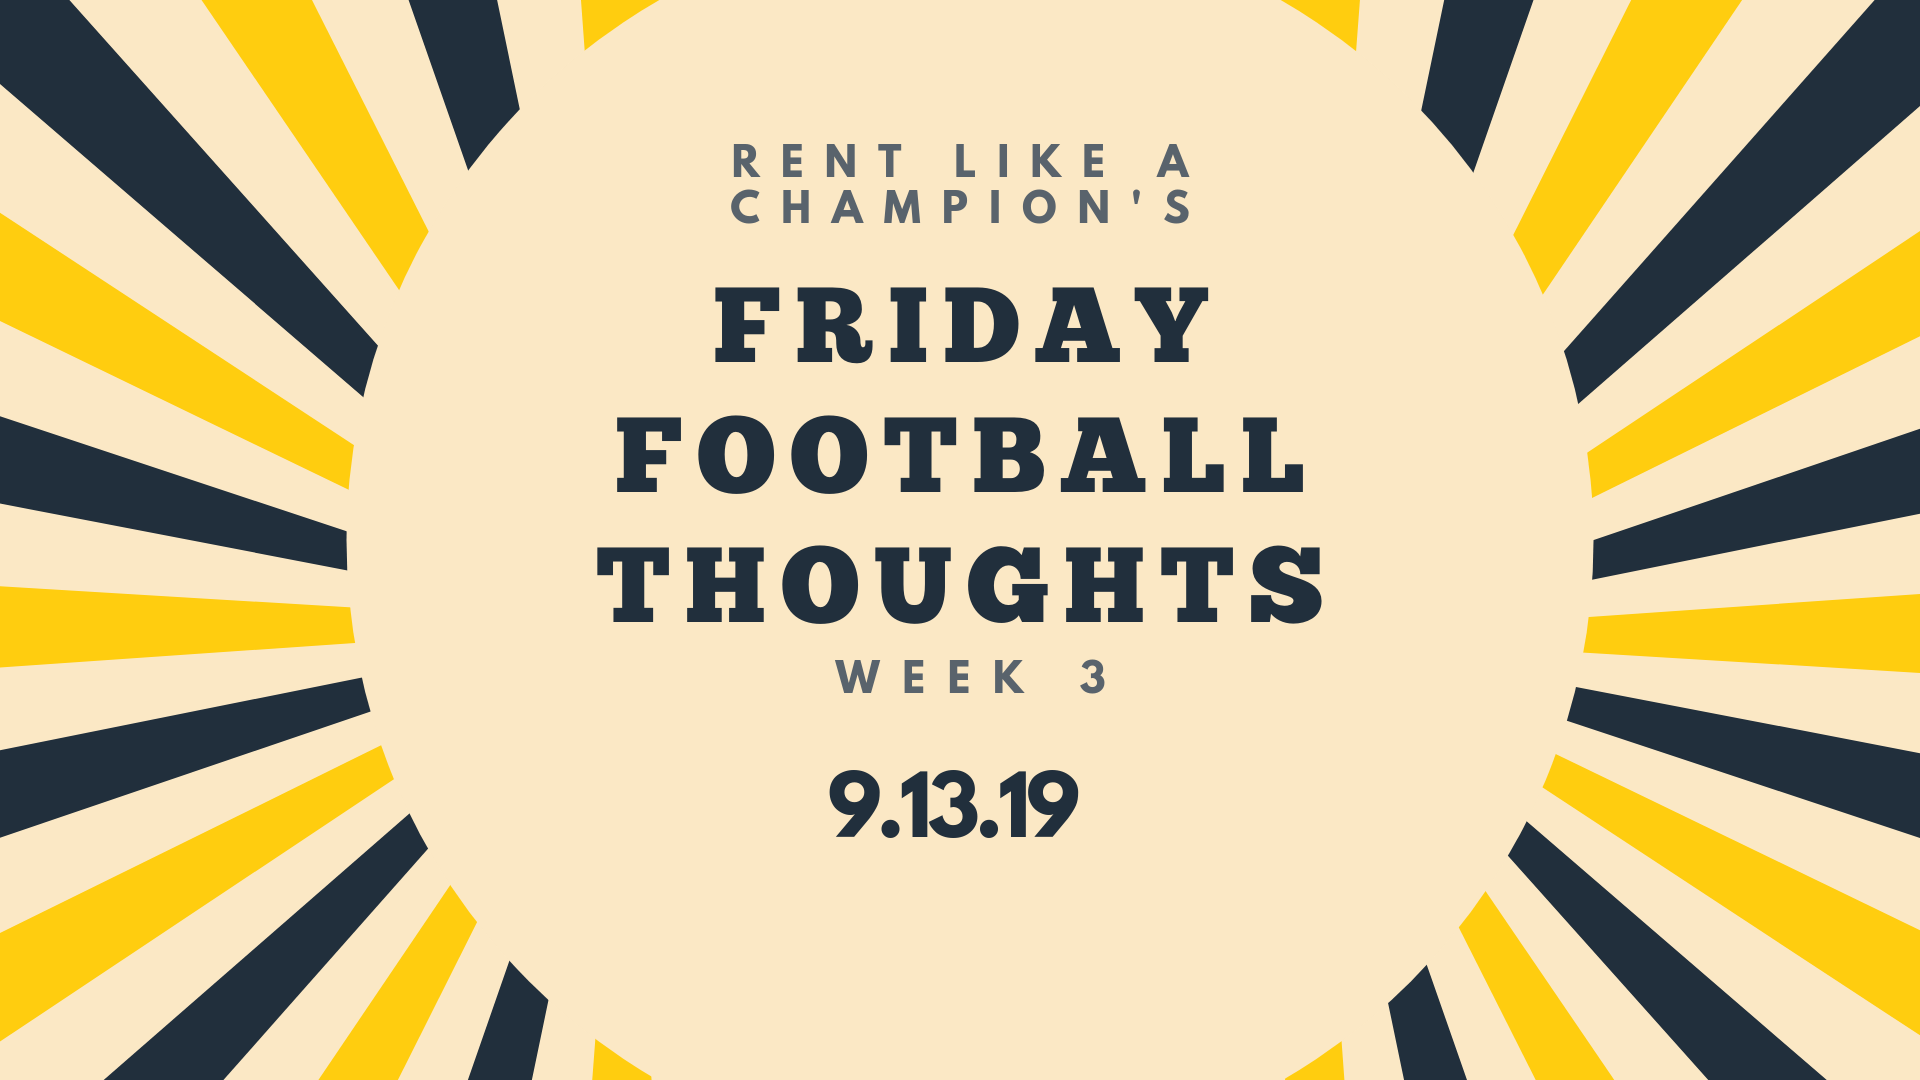 Friday Football Thoughts 9.13